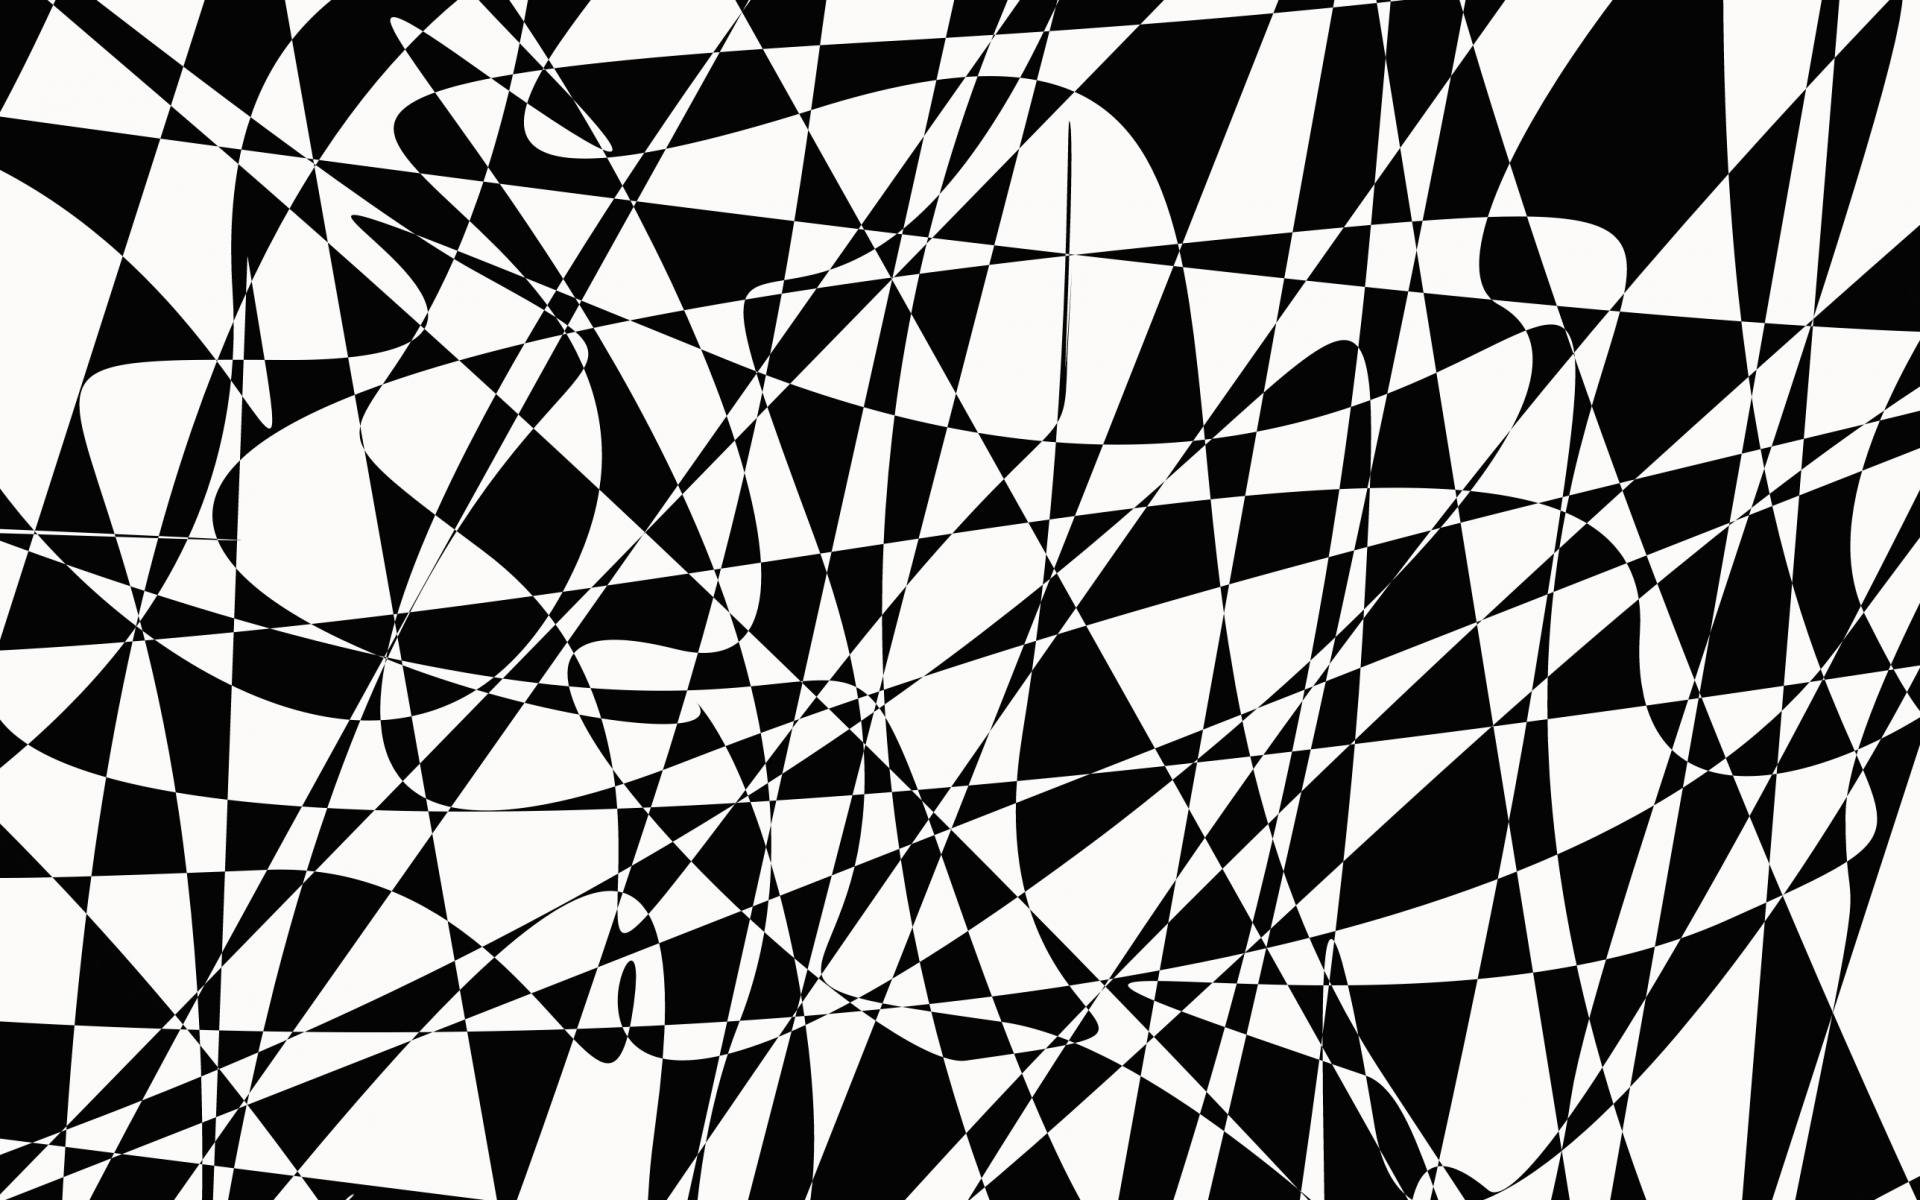 Black Geometric Wallpapers 22 Wallpapers Adorable Wallpapers